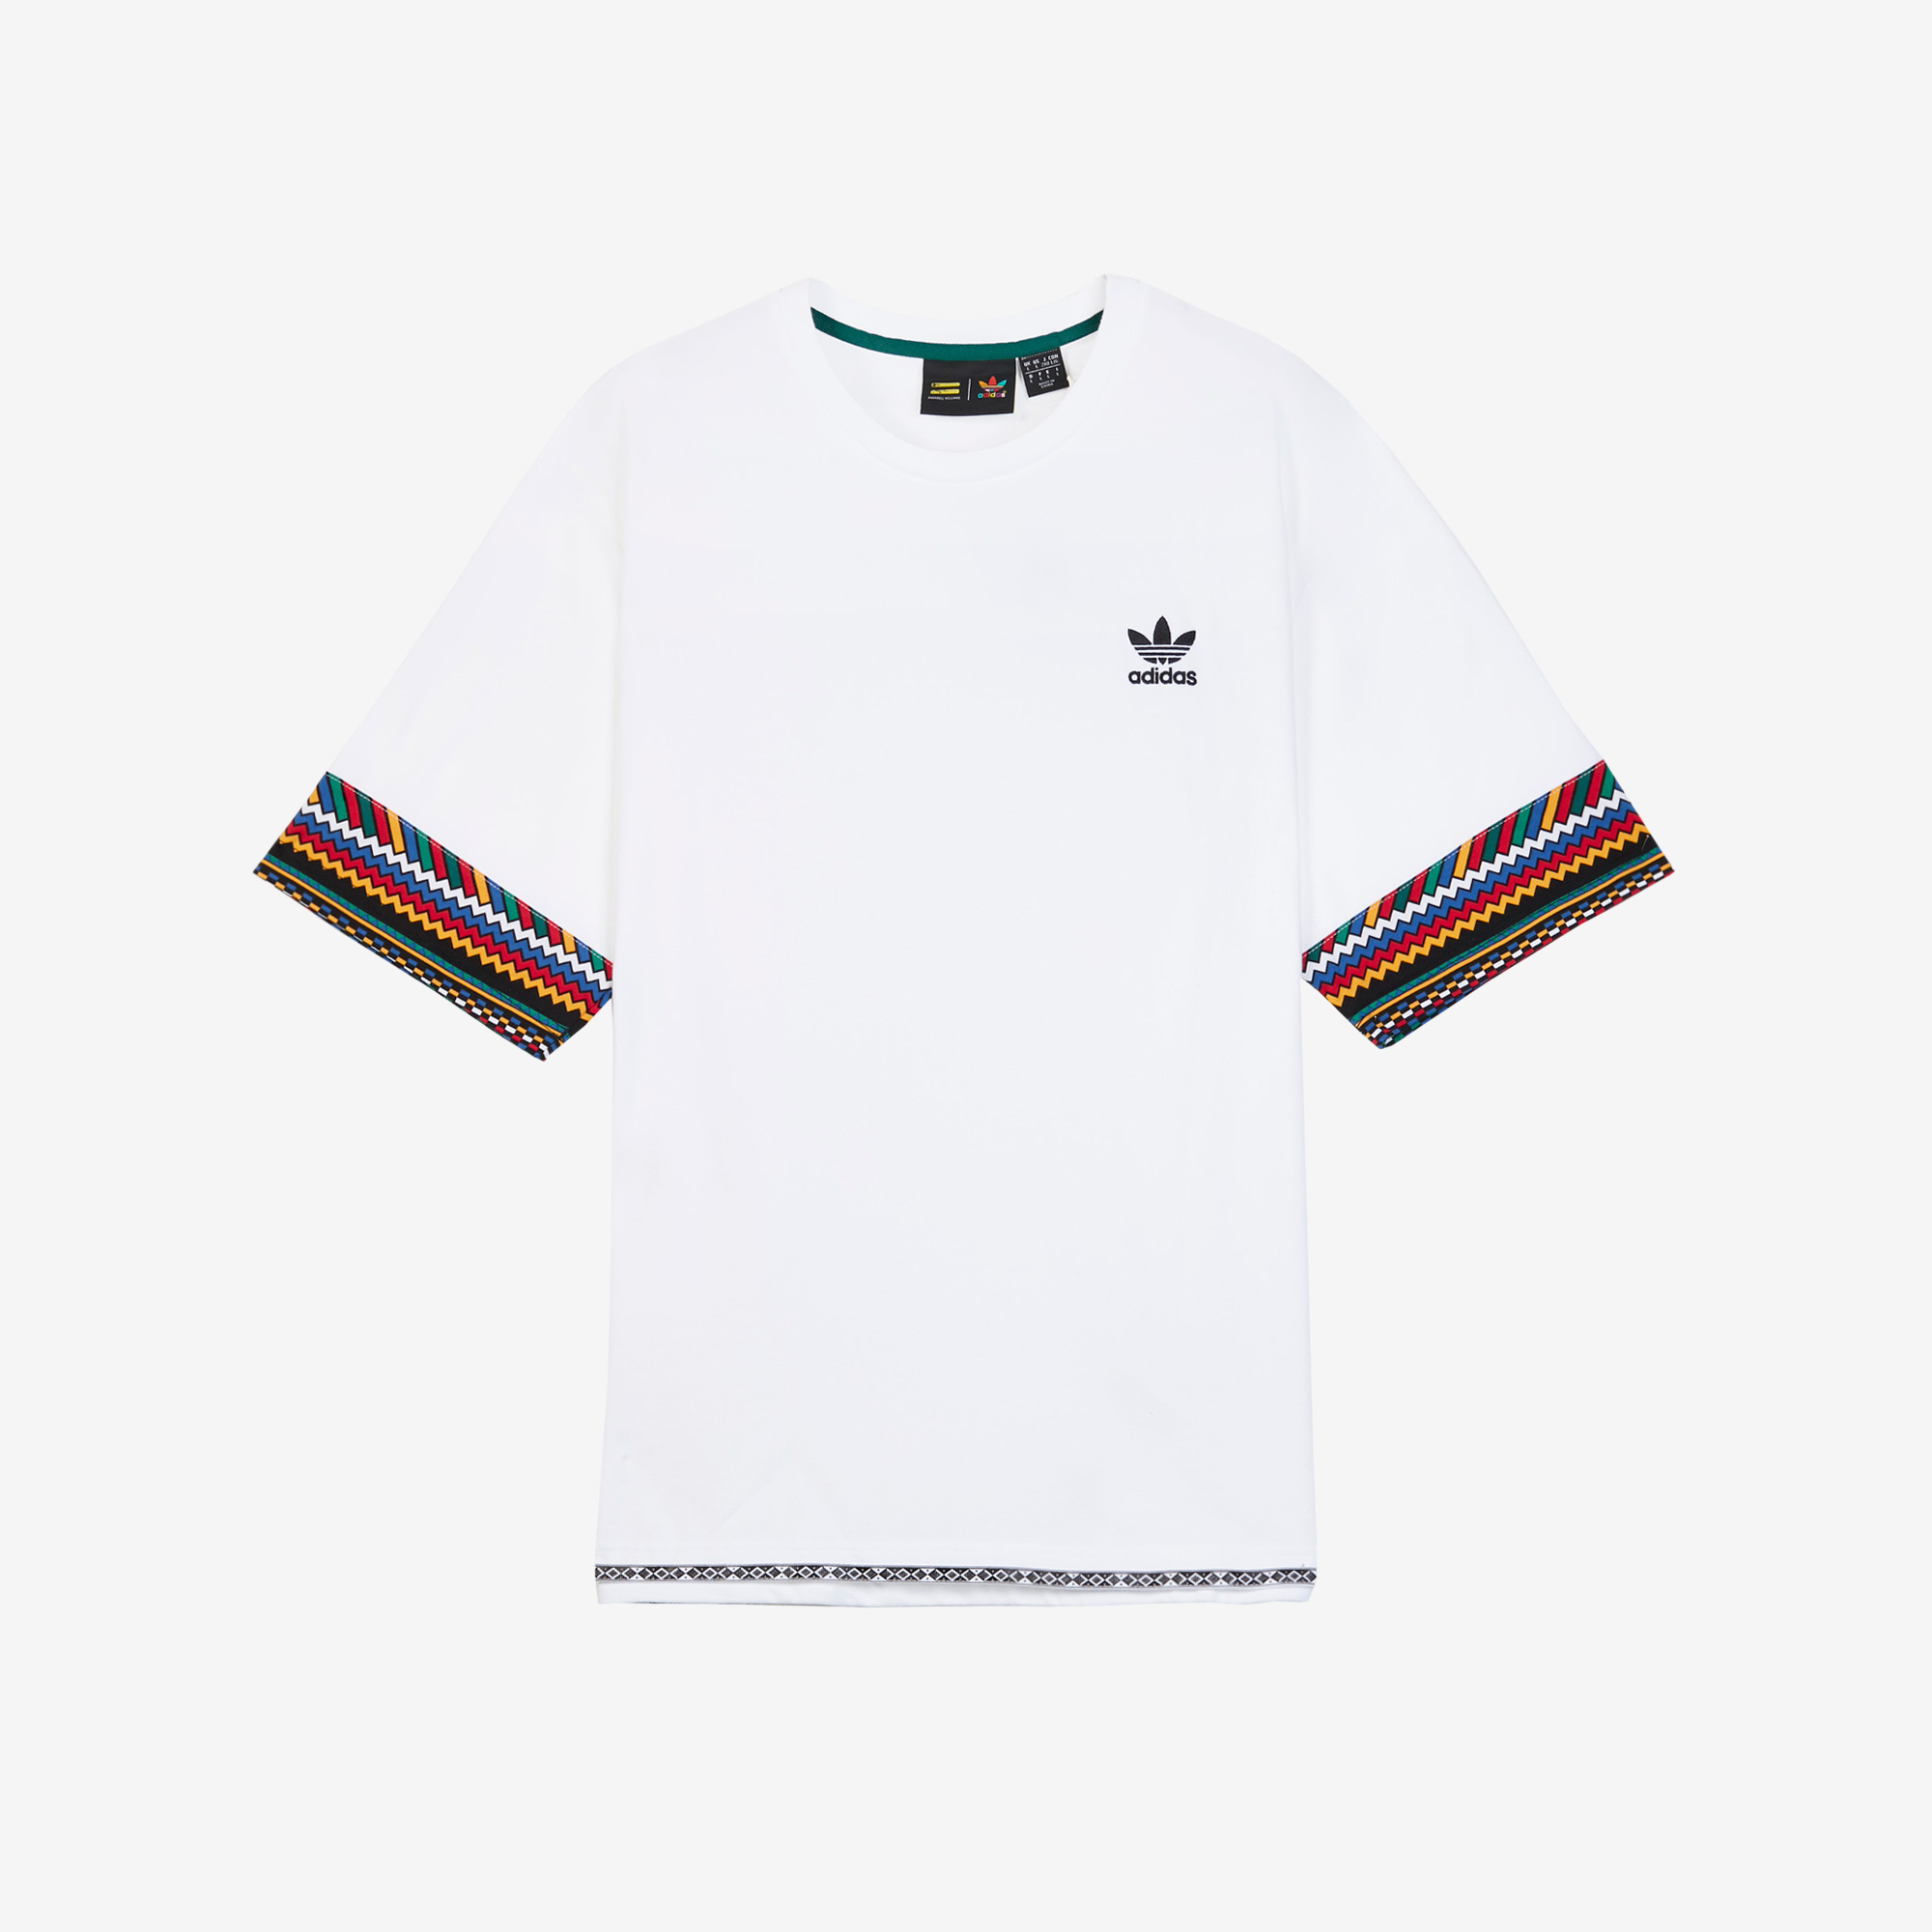 separation shoes 25a9f 61c04 adidas by Pharrell Williams PW Solar HU Trefoil Tee